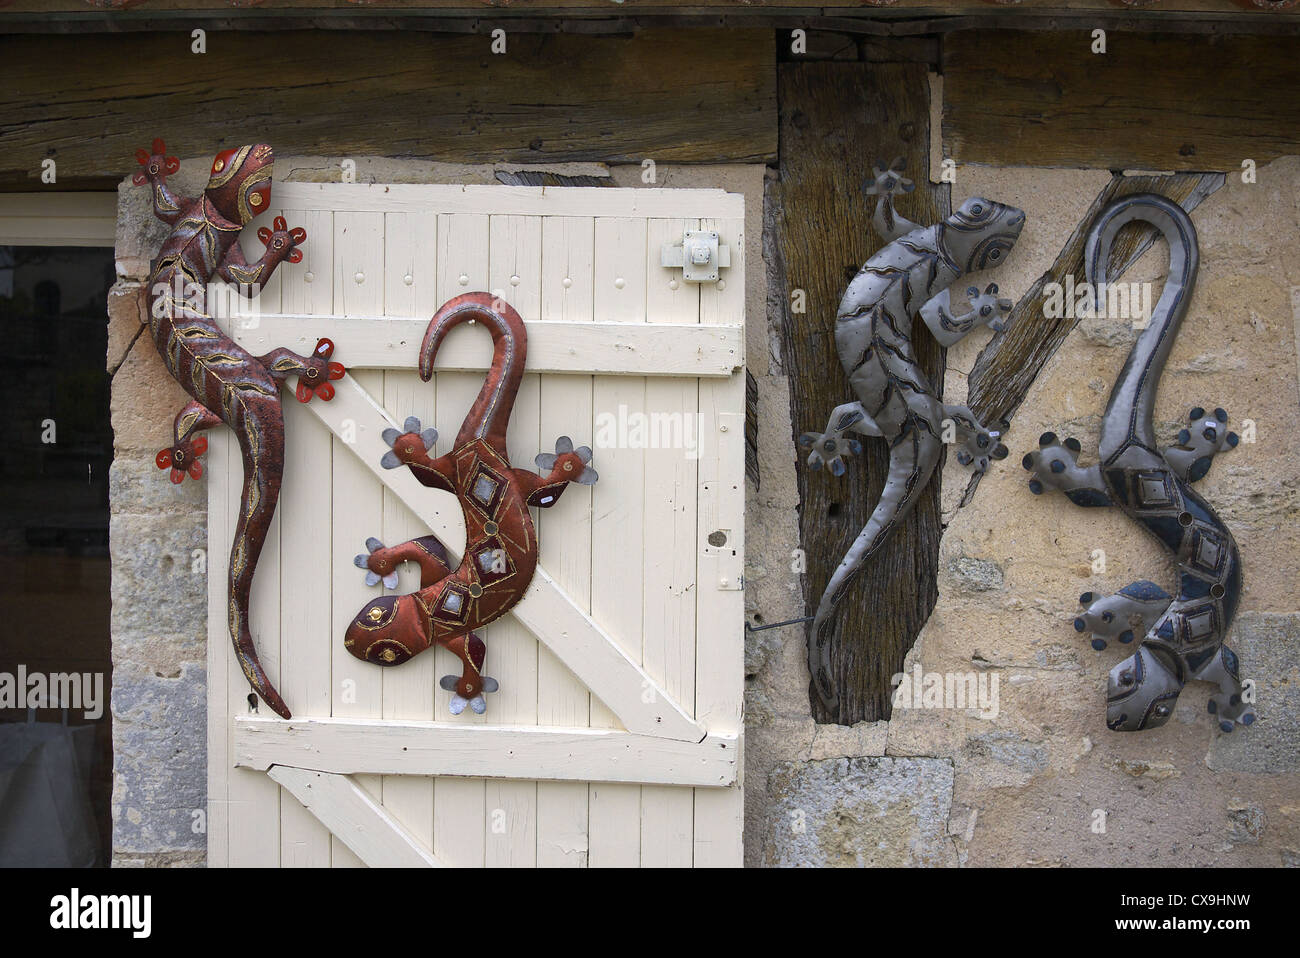 Metal artisan lizards on sale at a craft shop in France. - Stock Image